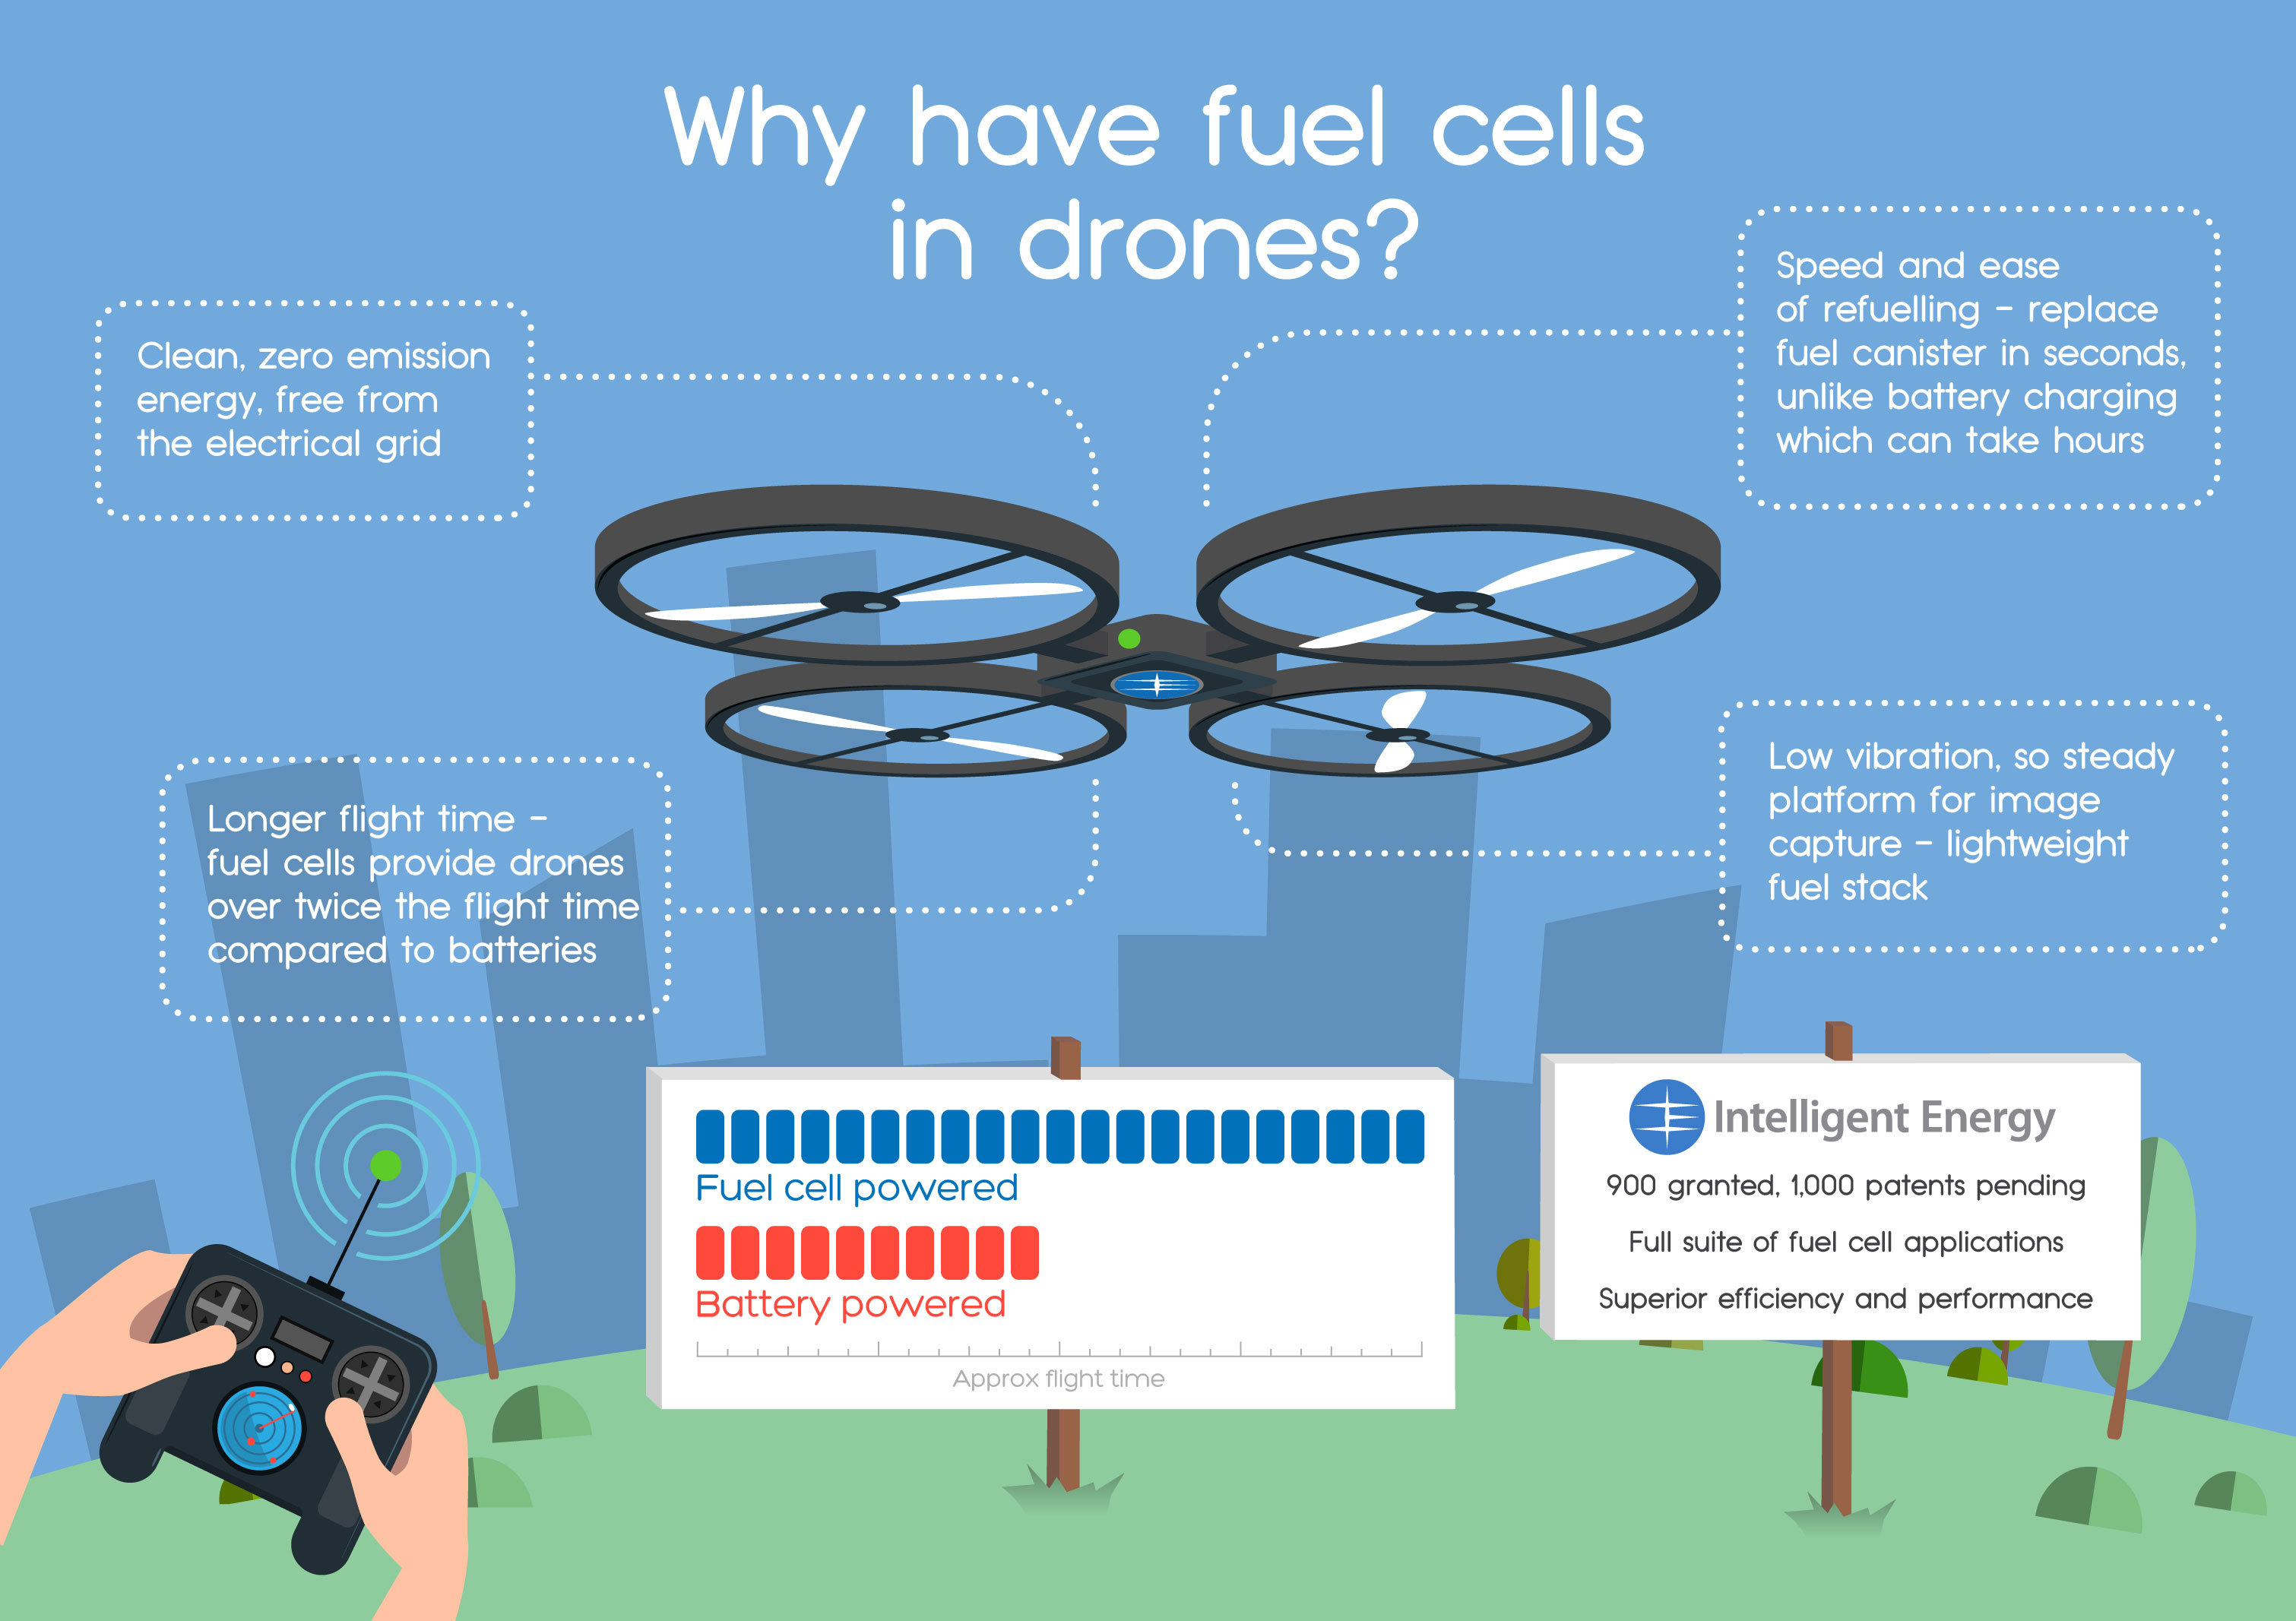 industrial applications of hydrogen fuel cells simple diagram business wire n d drone infographic retrieved 14th august 2018 from  [ 3021 x 2133 Pixel ]